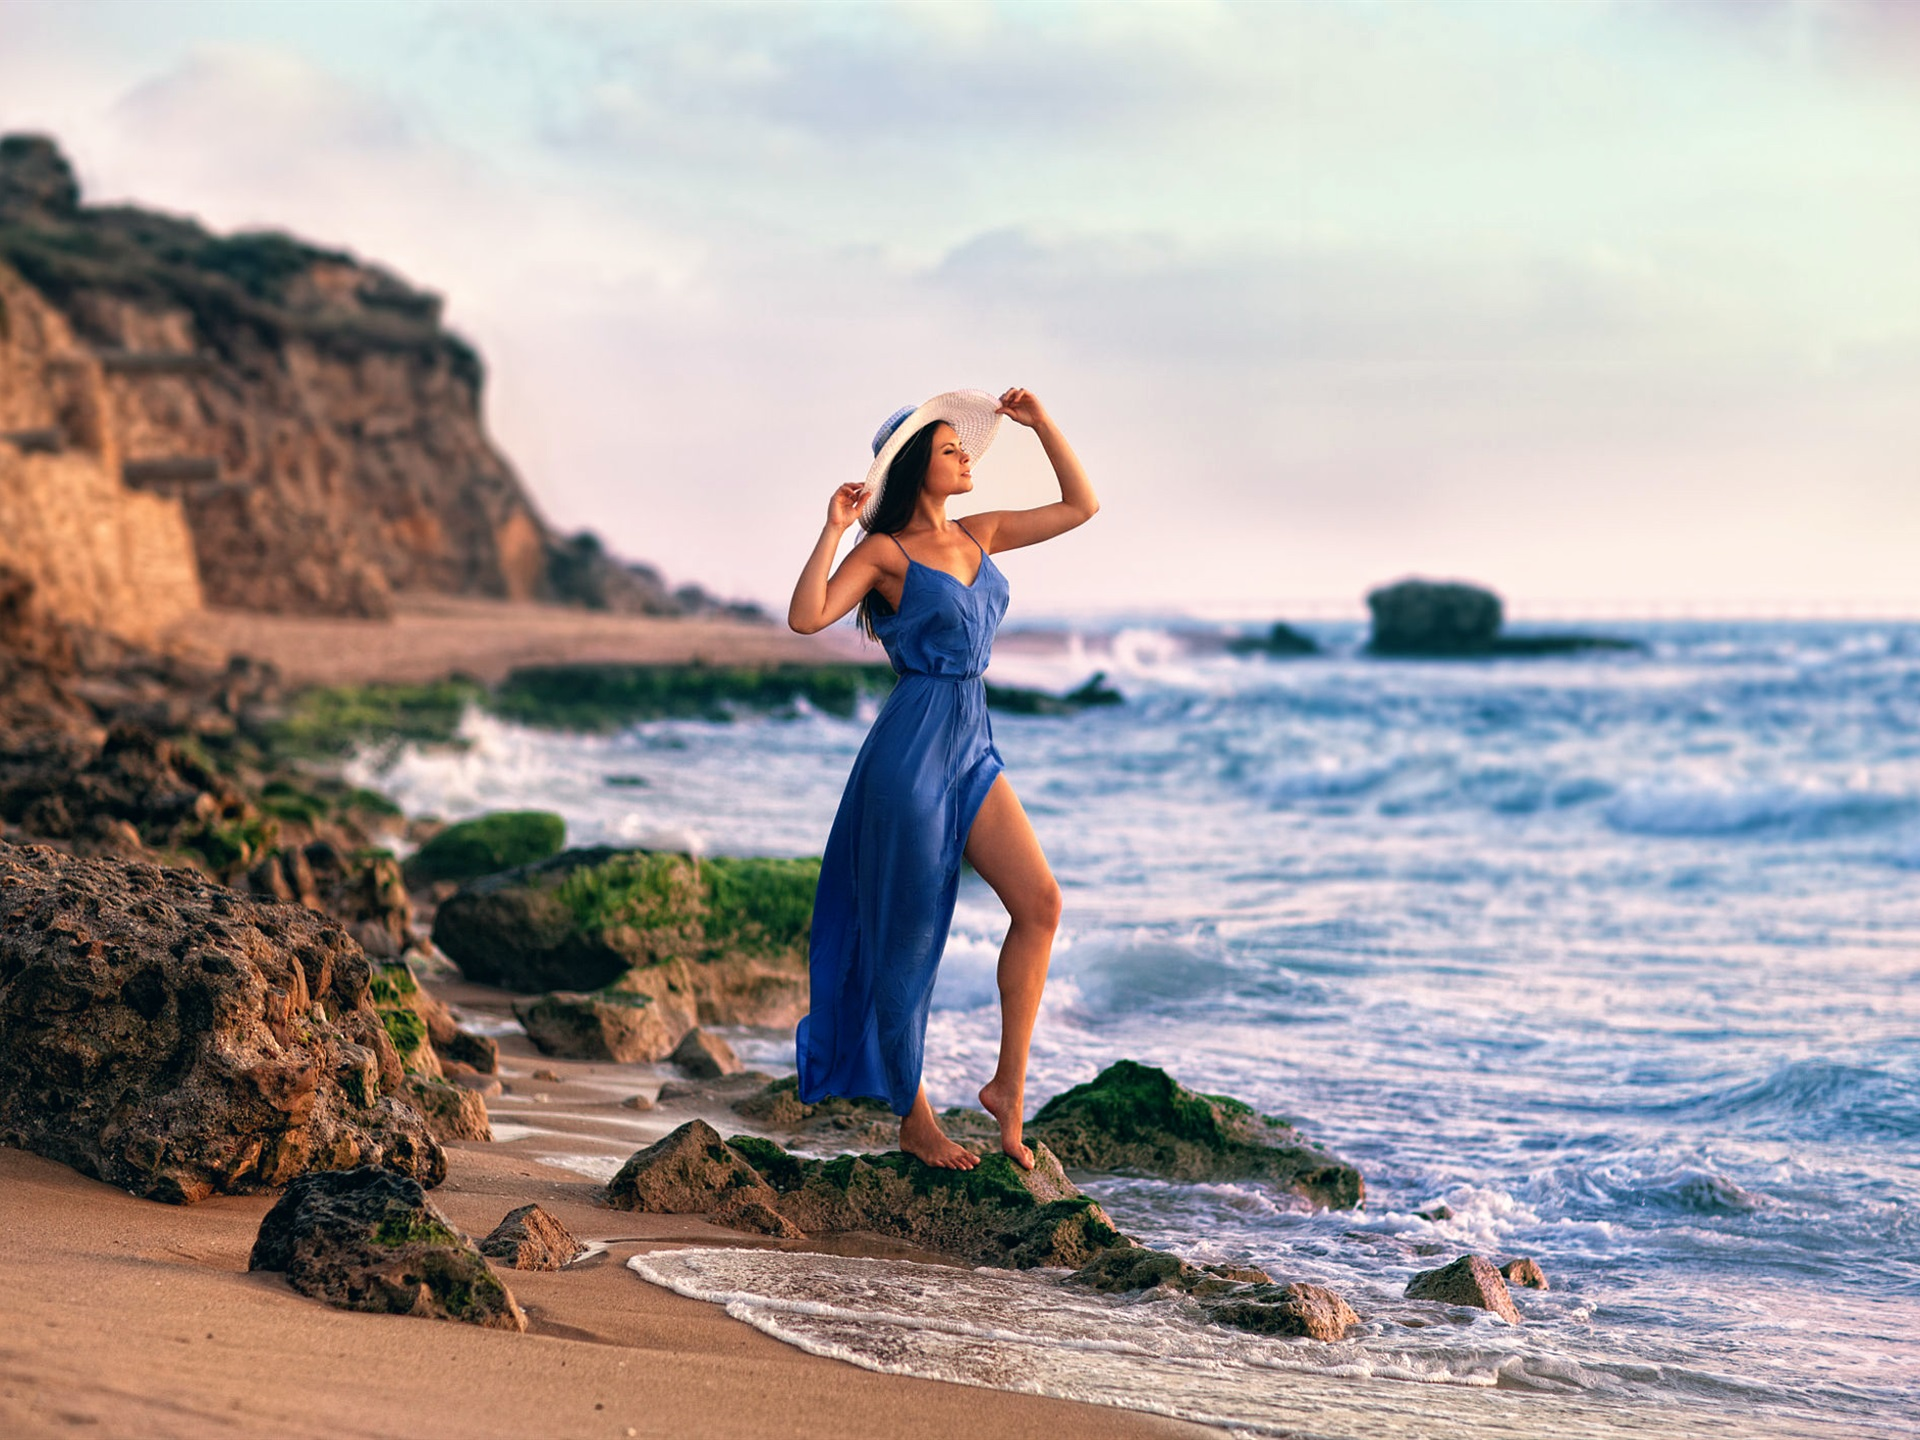 1080p Wallpaper Girl Feet Blue Dress Girl At Coast Rocks Sea Wallpaper Girls